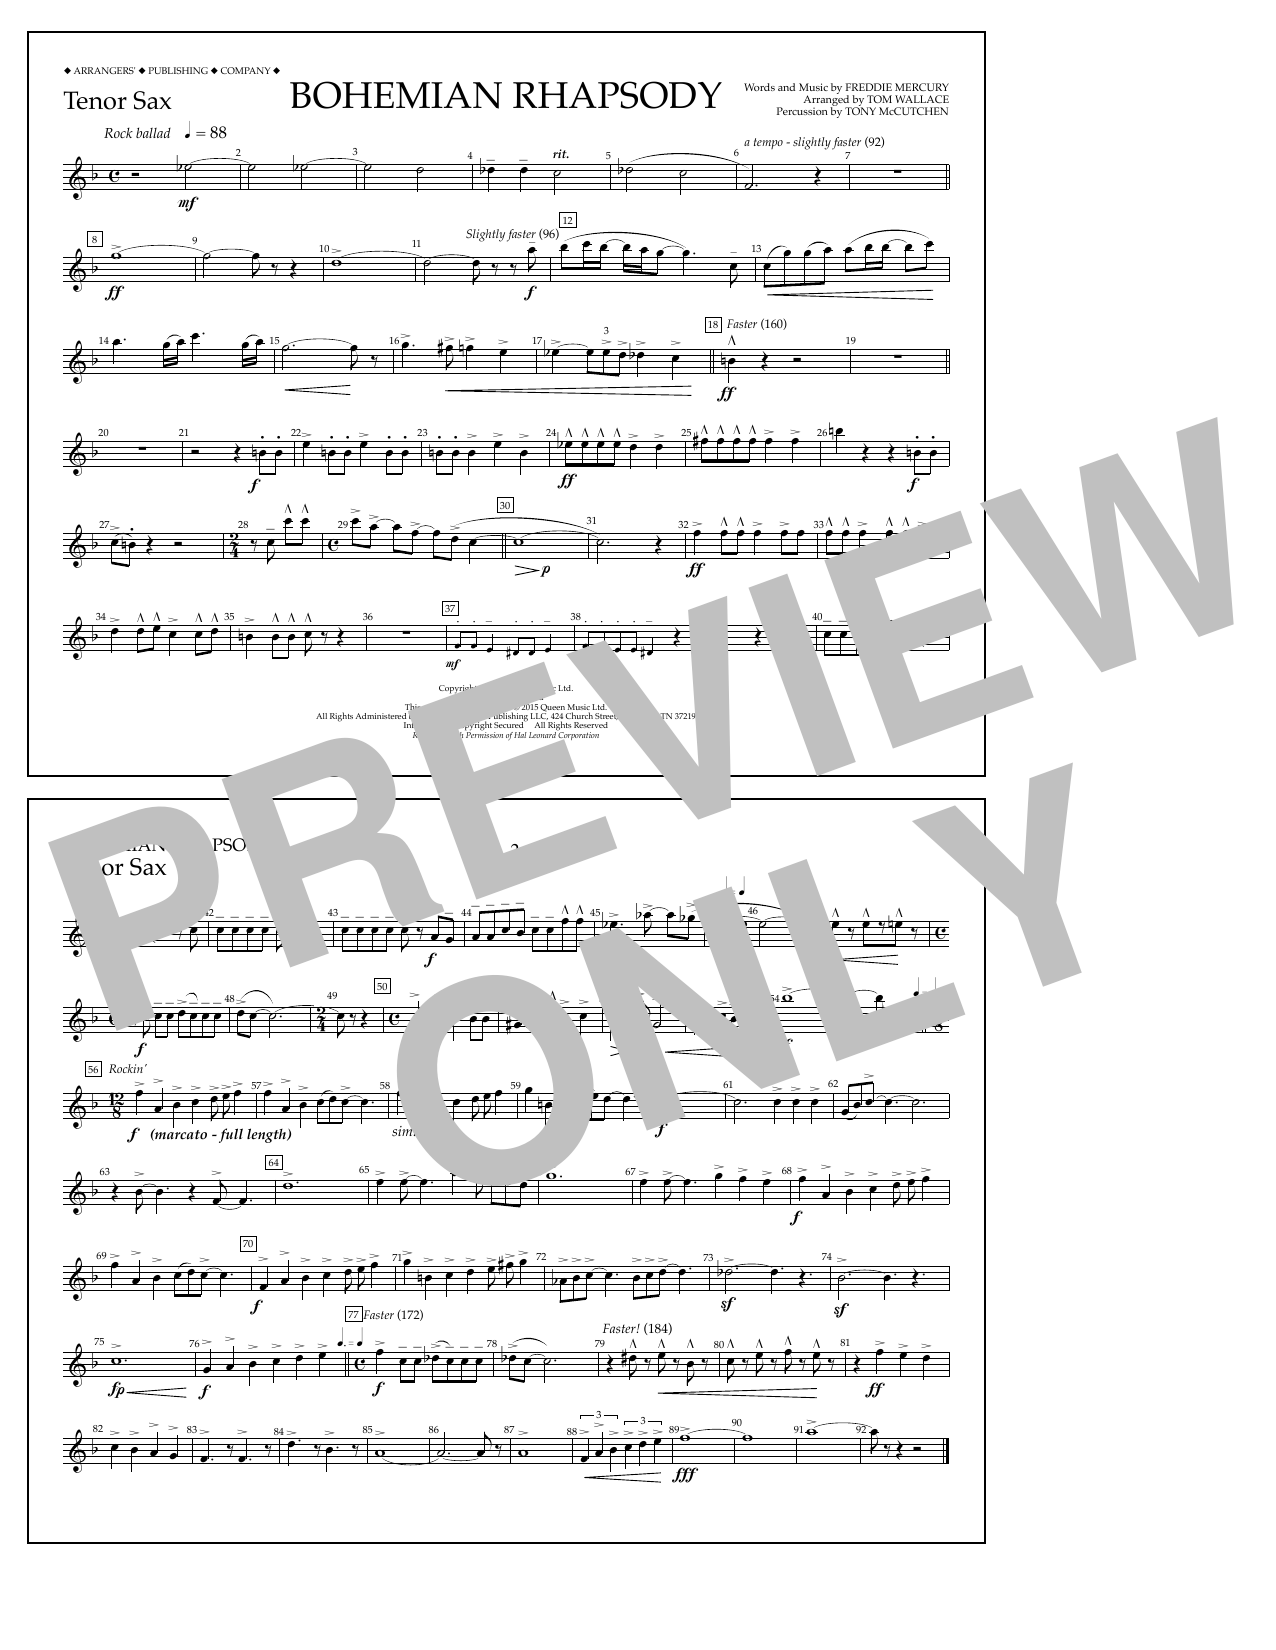 Tom Wallace Bohemian Rhapsody - Tenor Sax sheet music notes and chords. Download Printable PDF.